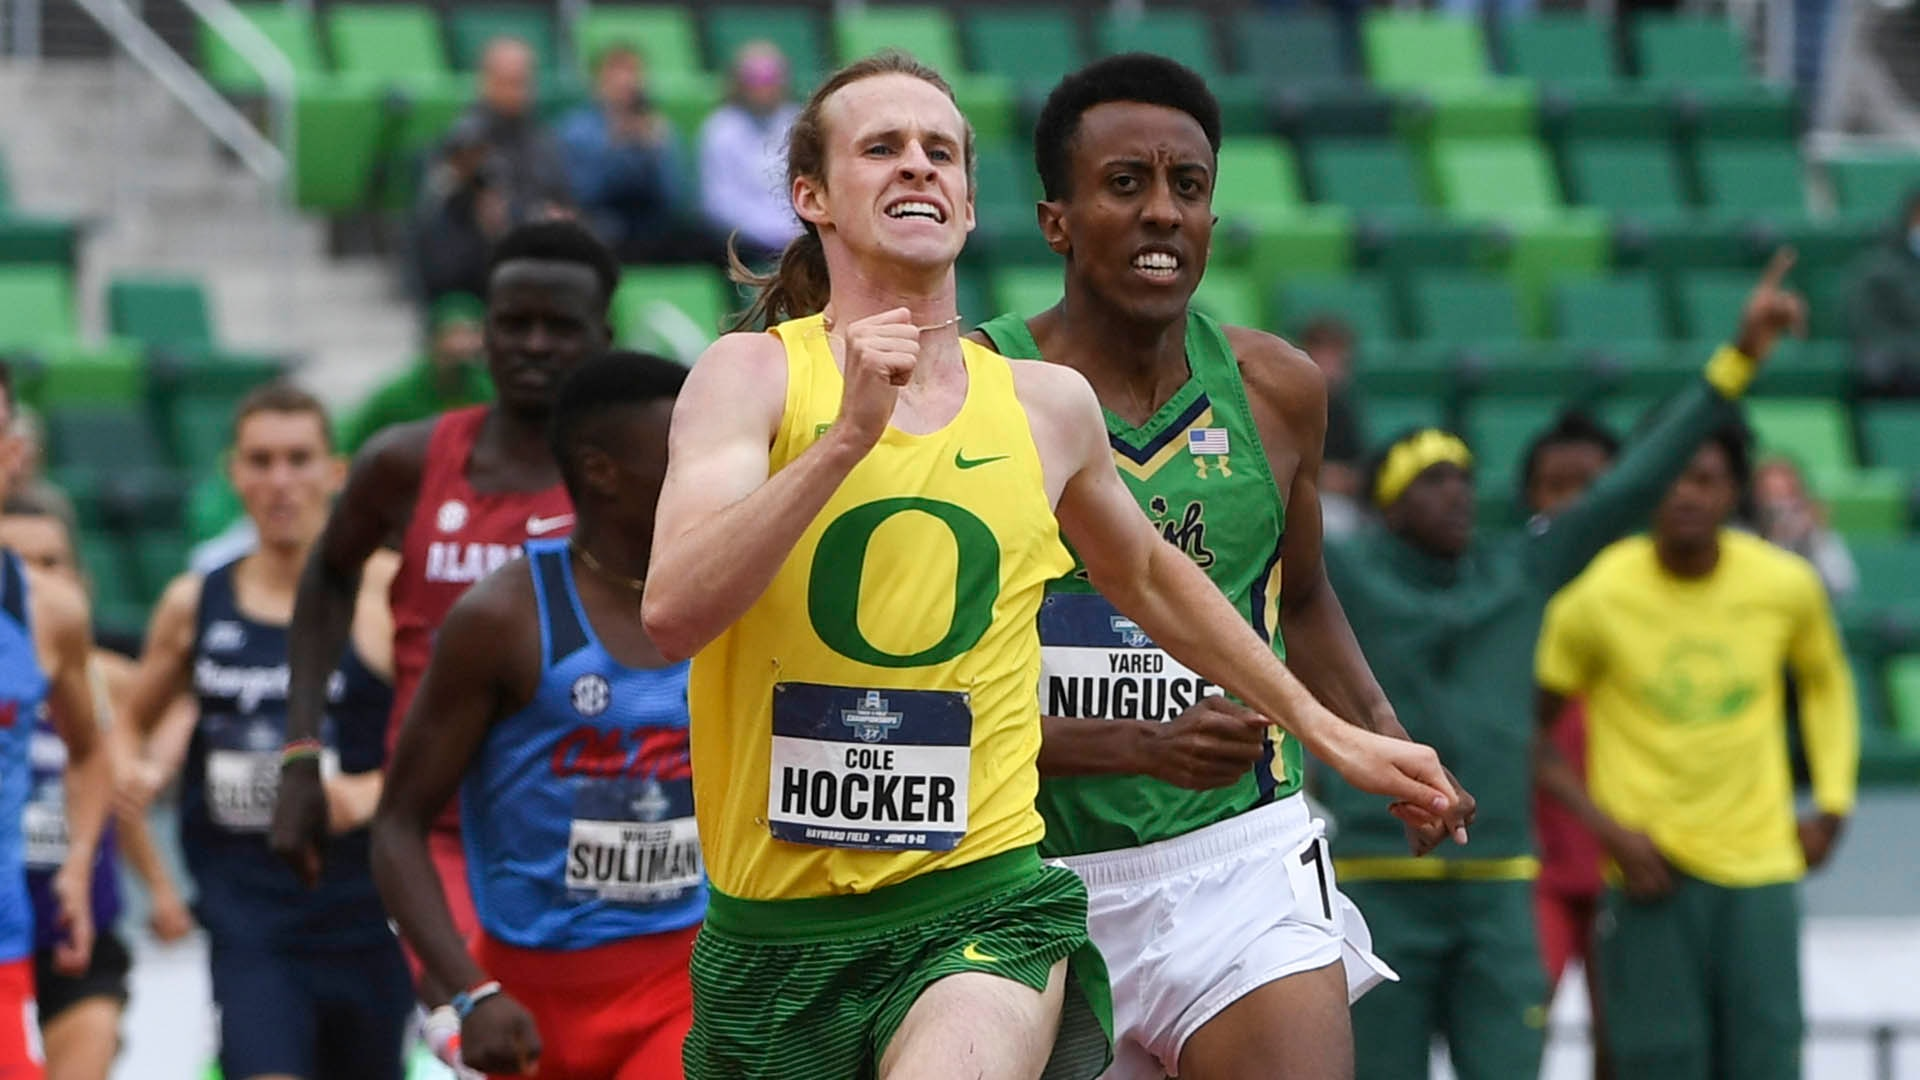 Cole Hocker and Yared Nuguse in the 1500m at 2021 NCAAs